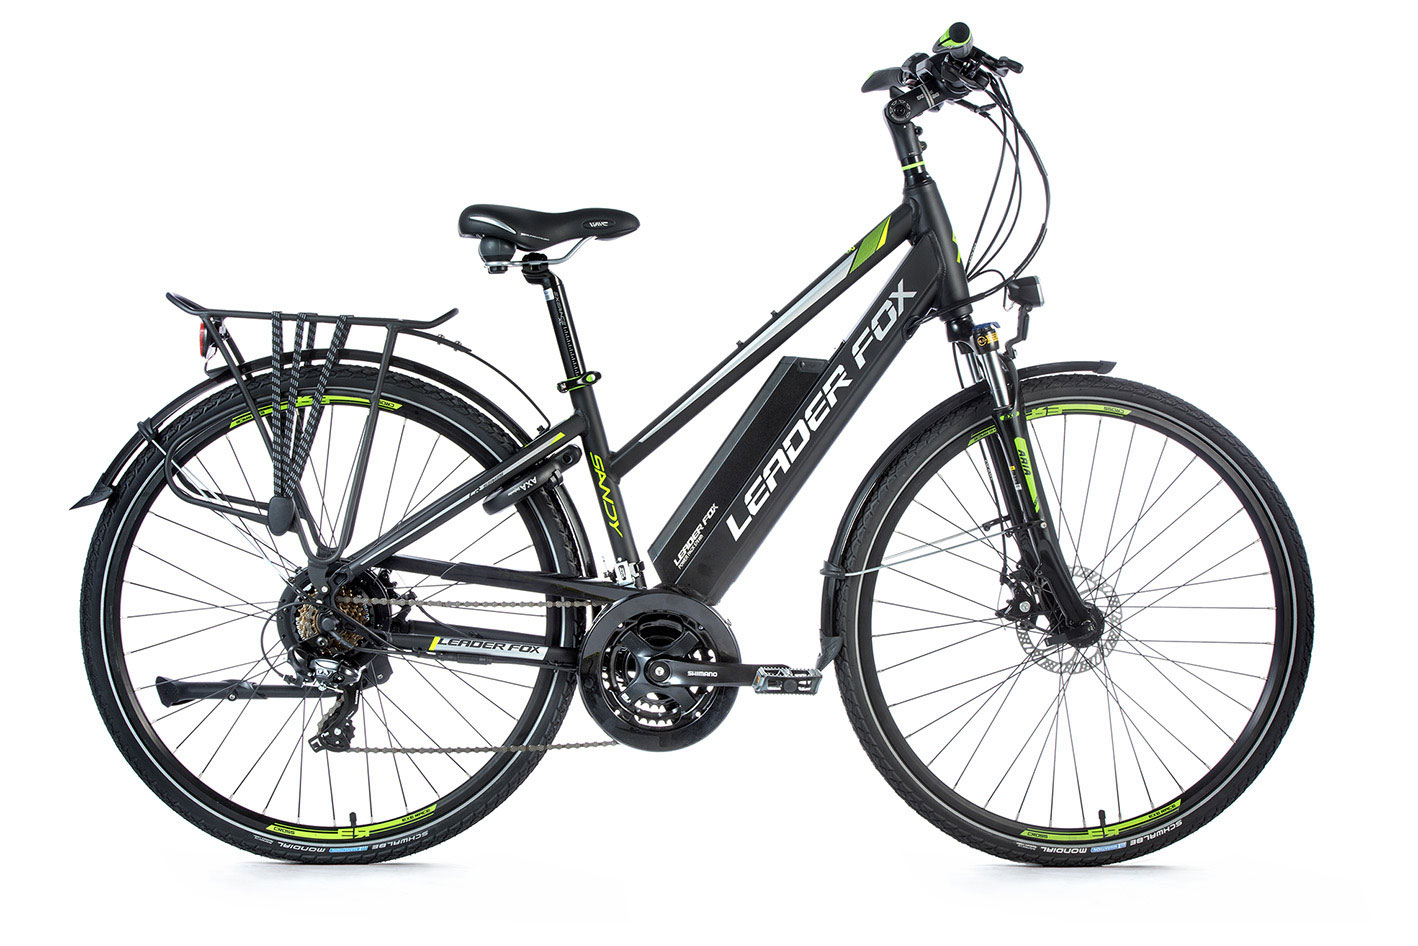 Bicicleta electrica trekking Leader Fox Sandy Lady